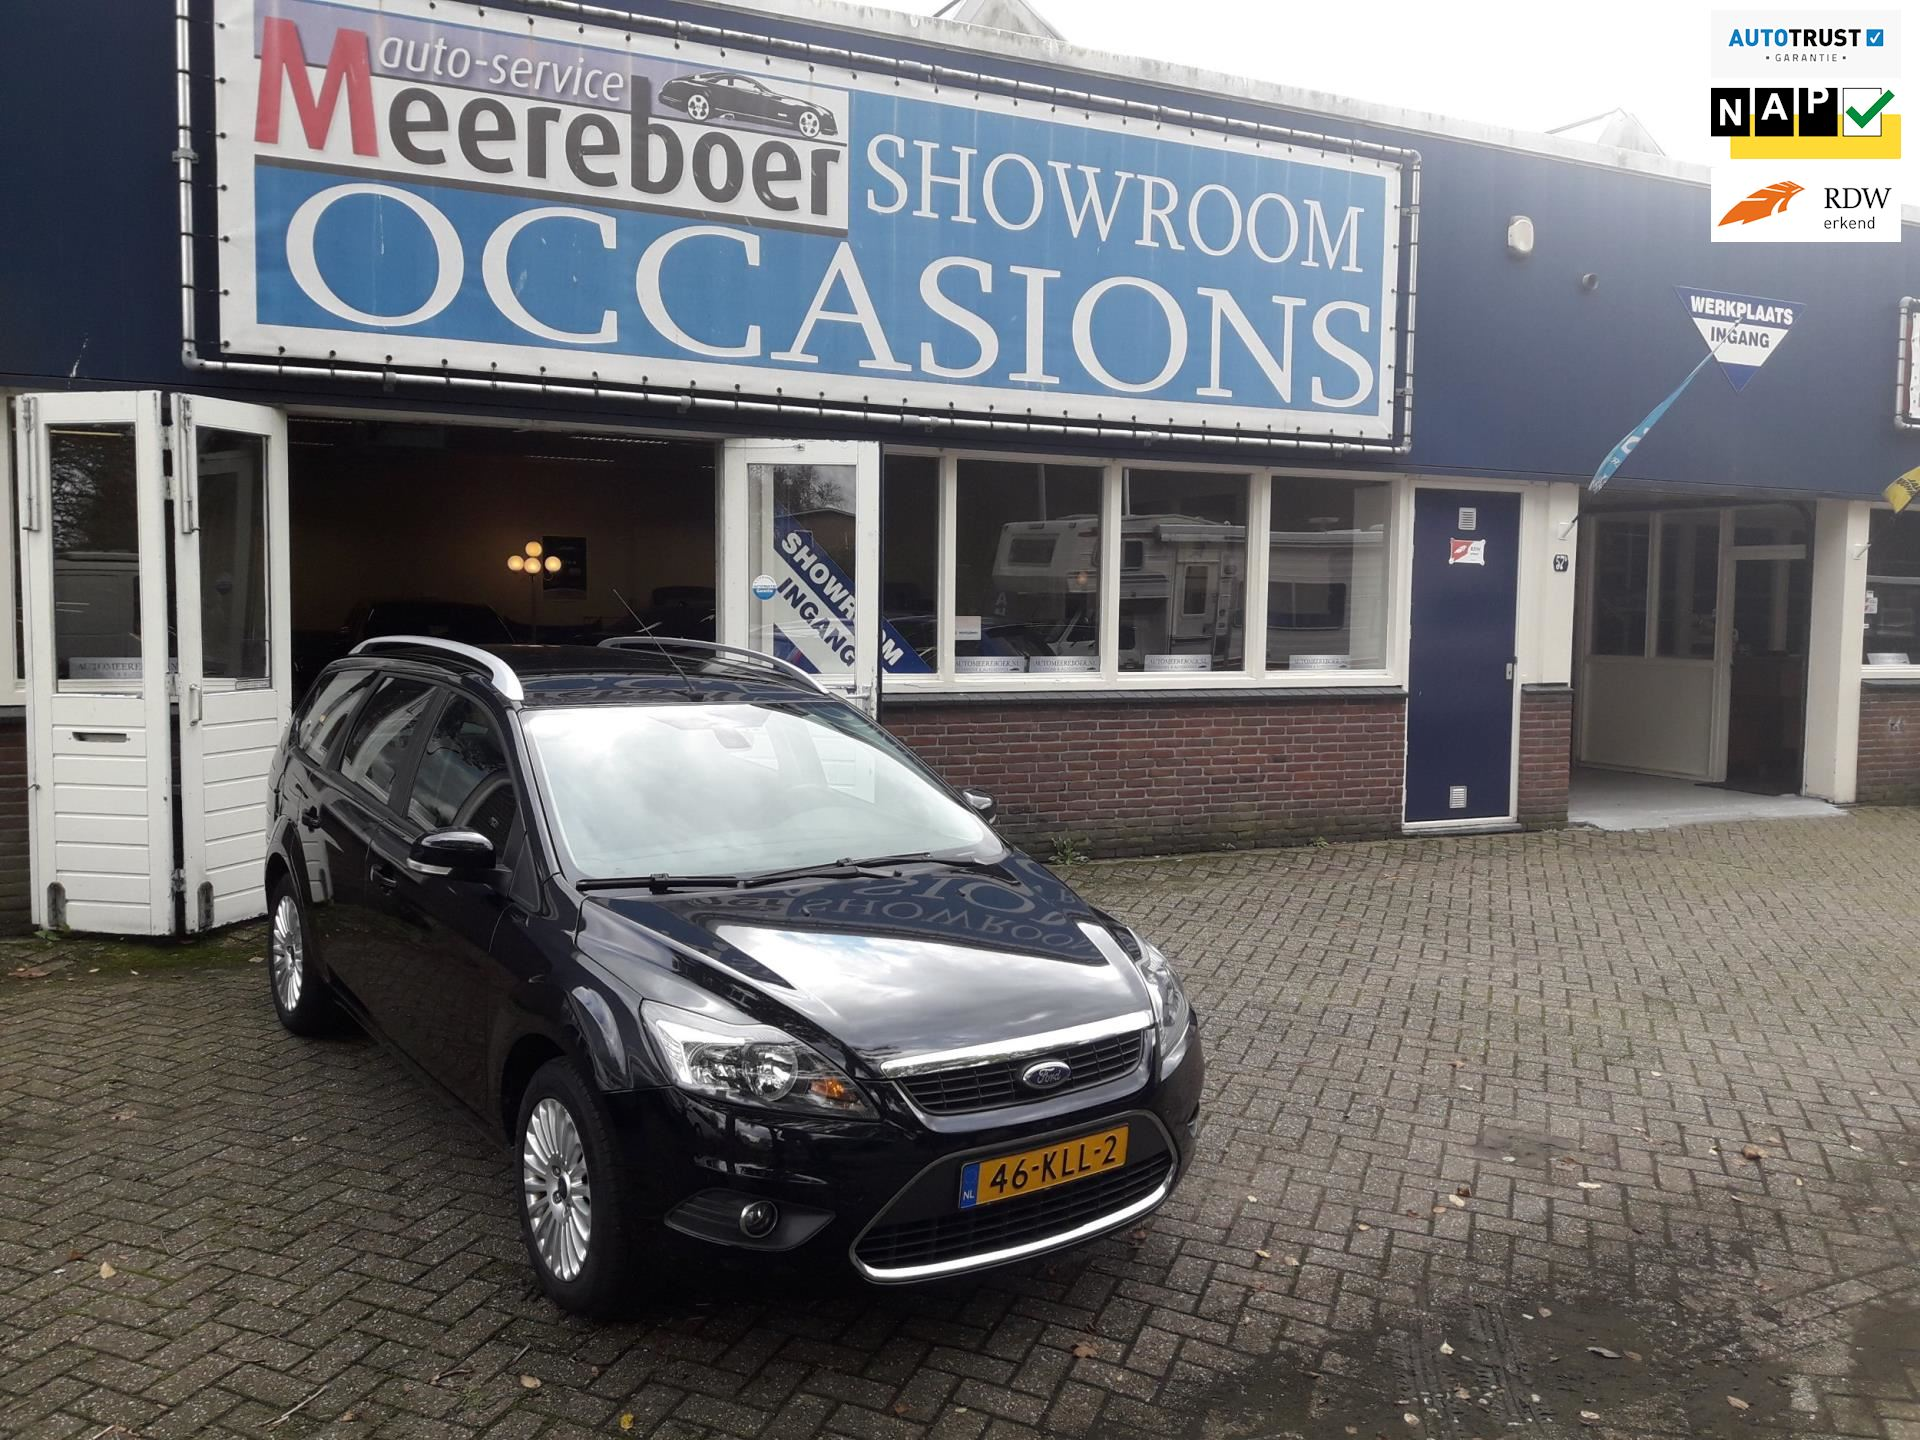 Ford Focus Wagon occasion - Autoservice Meereboer